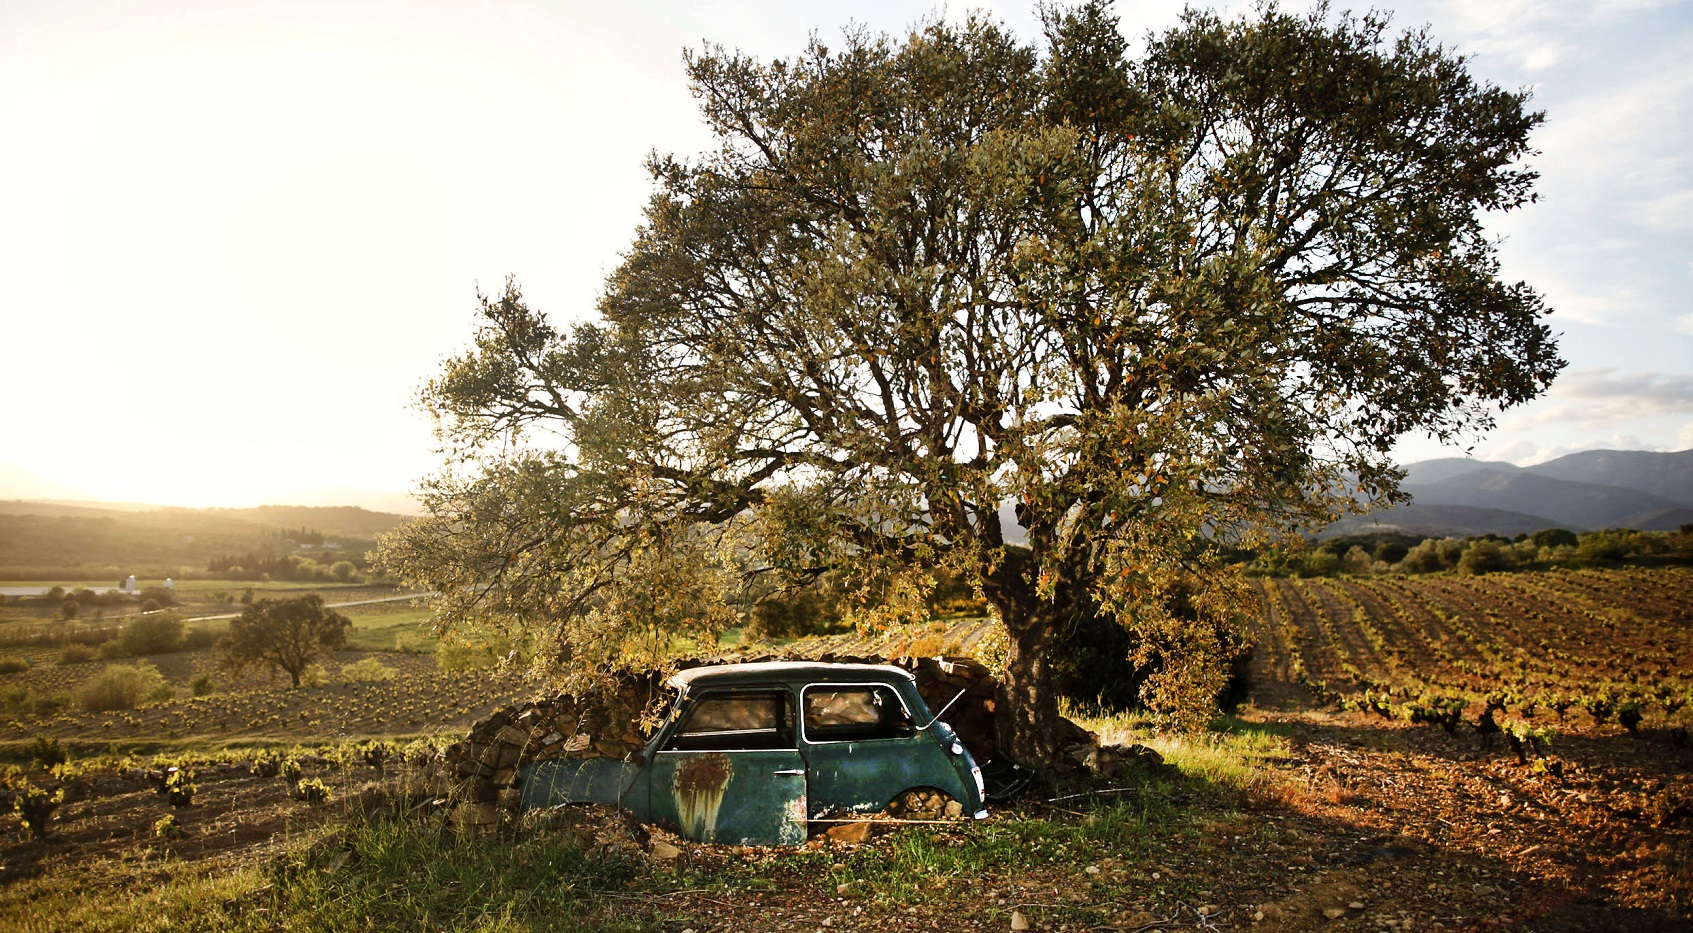 La Vinyeta Winery Girona, Spain - Car Under Tree in Vineyard